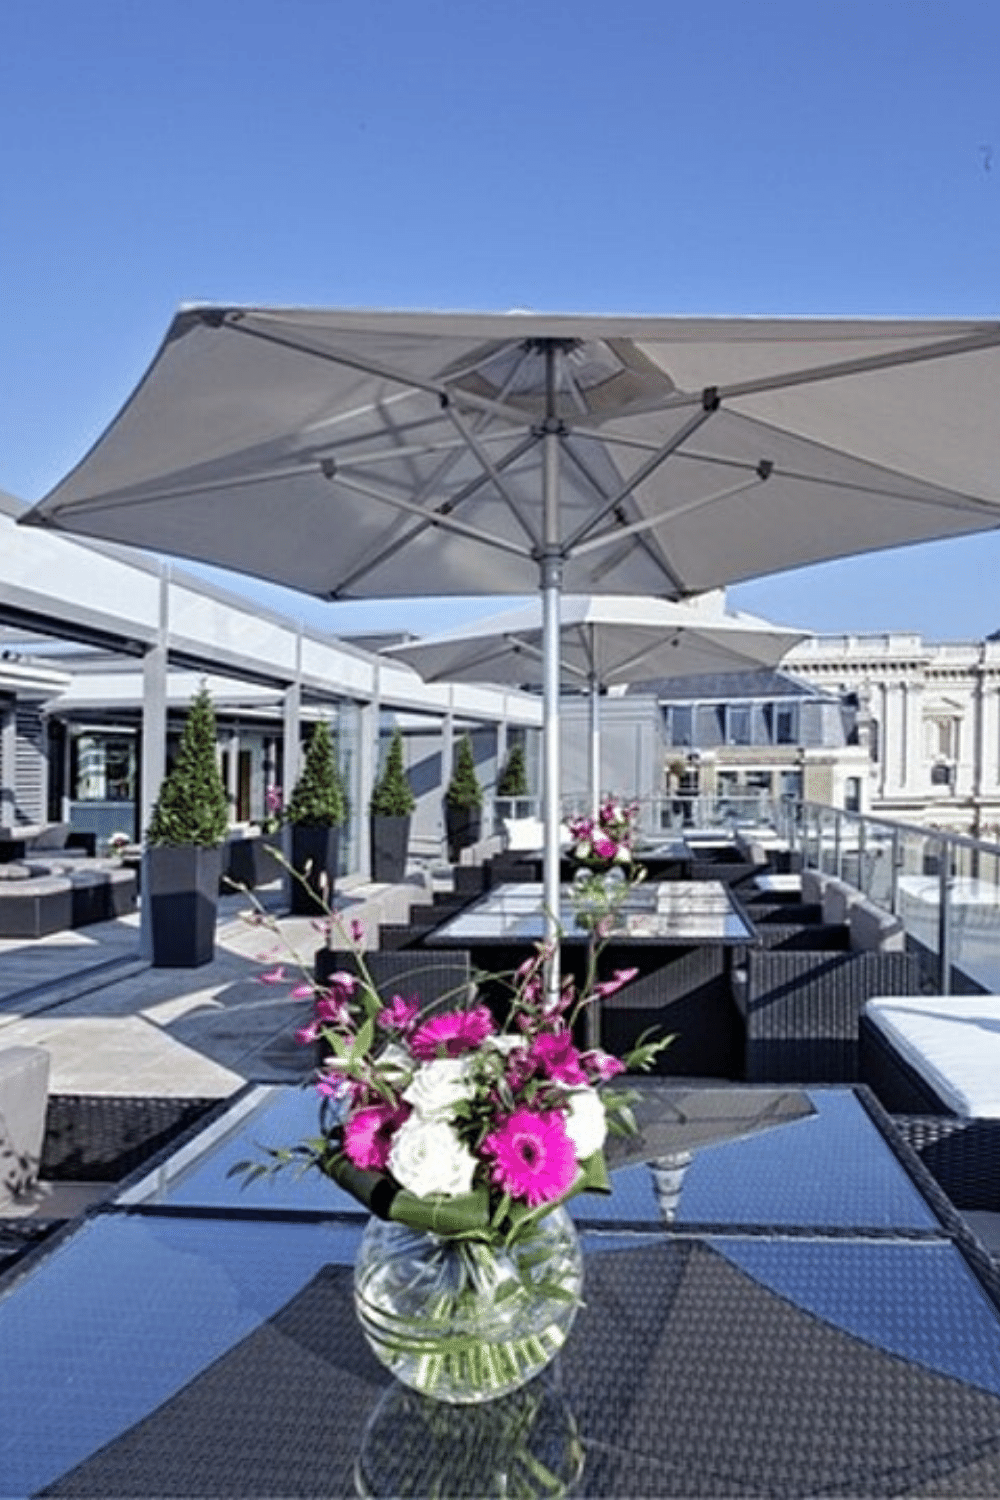 Rooftop Venues London for Bar Mitzvah Parties Sky Bar St Pauls